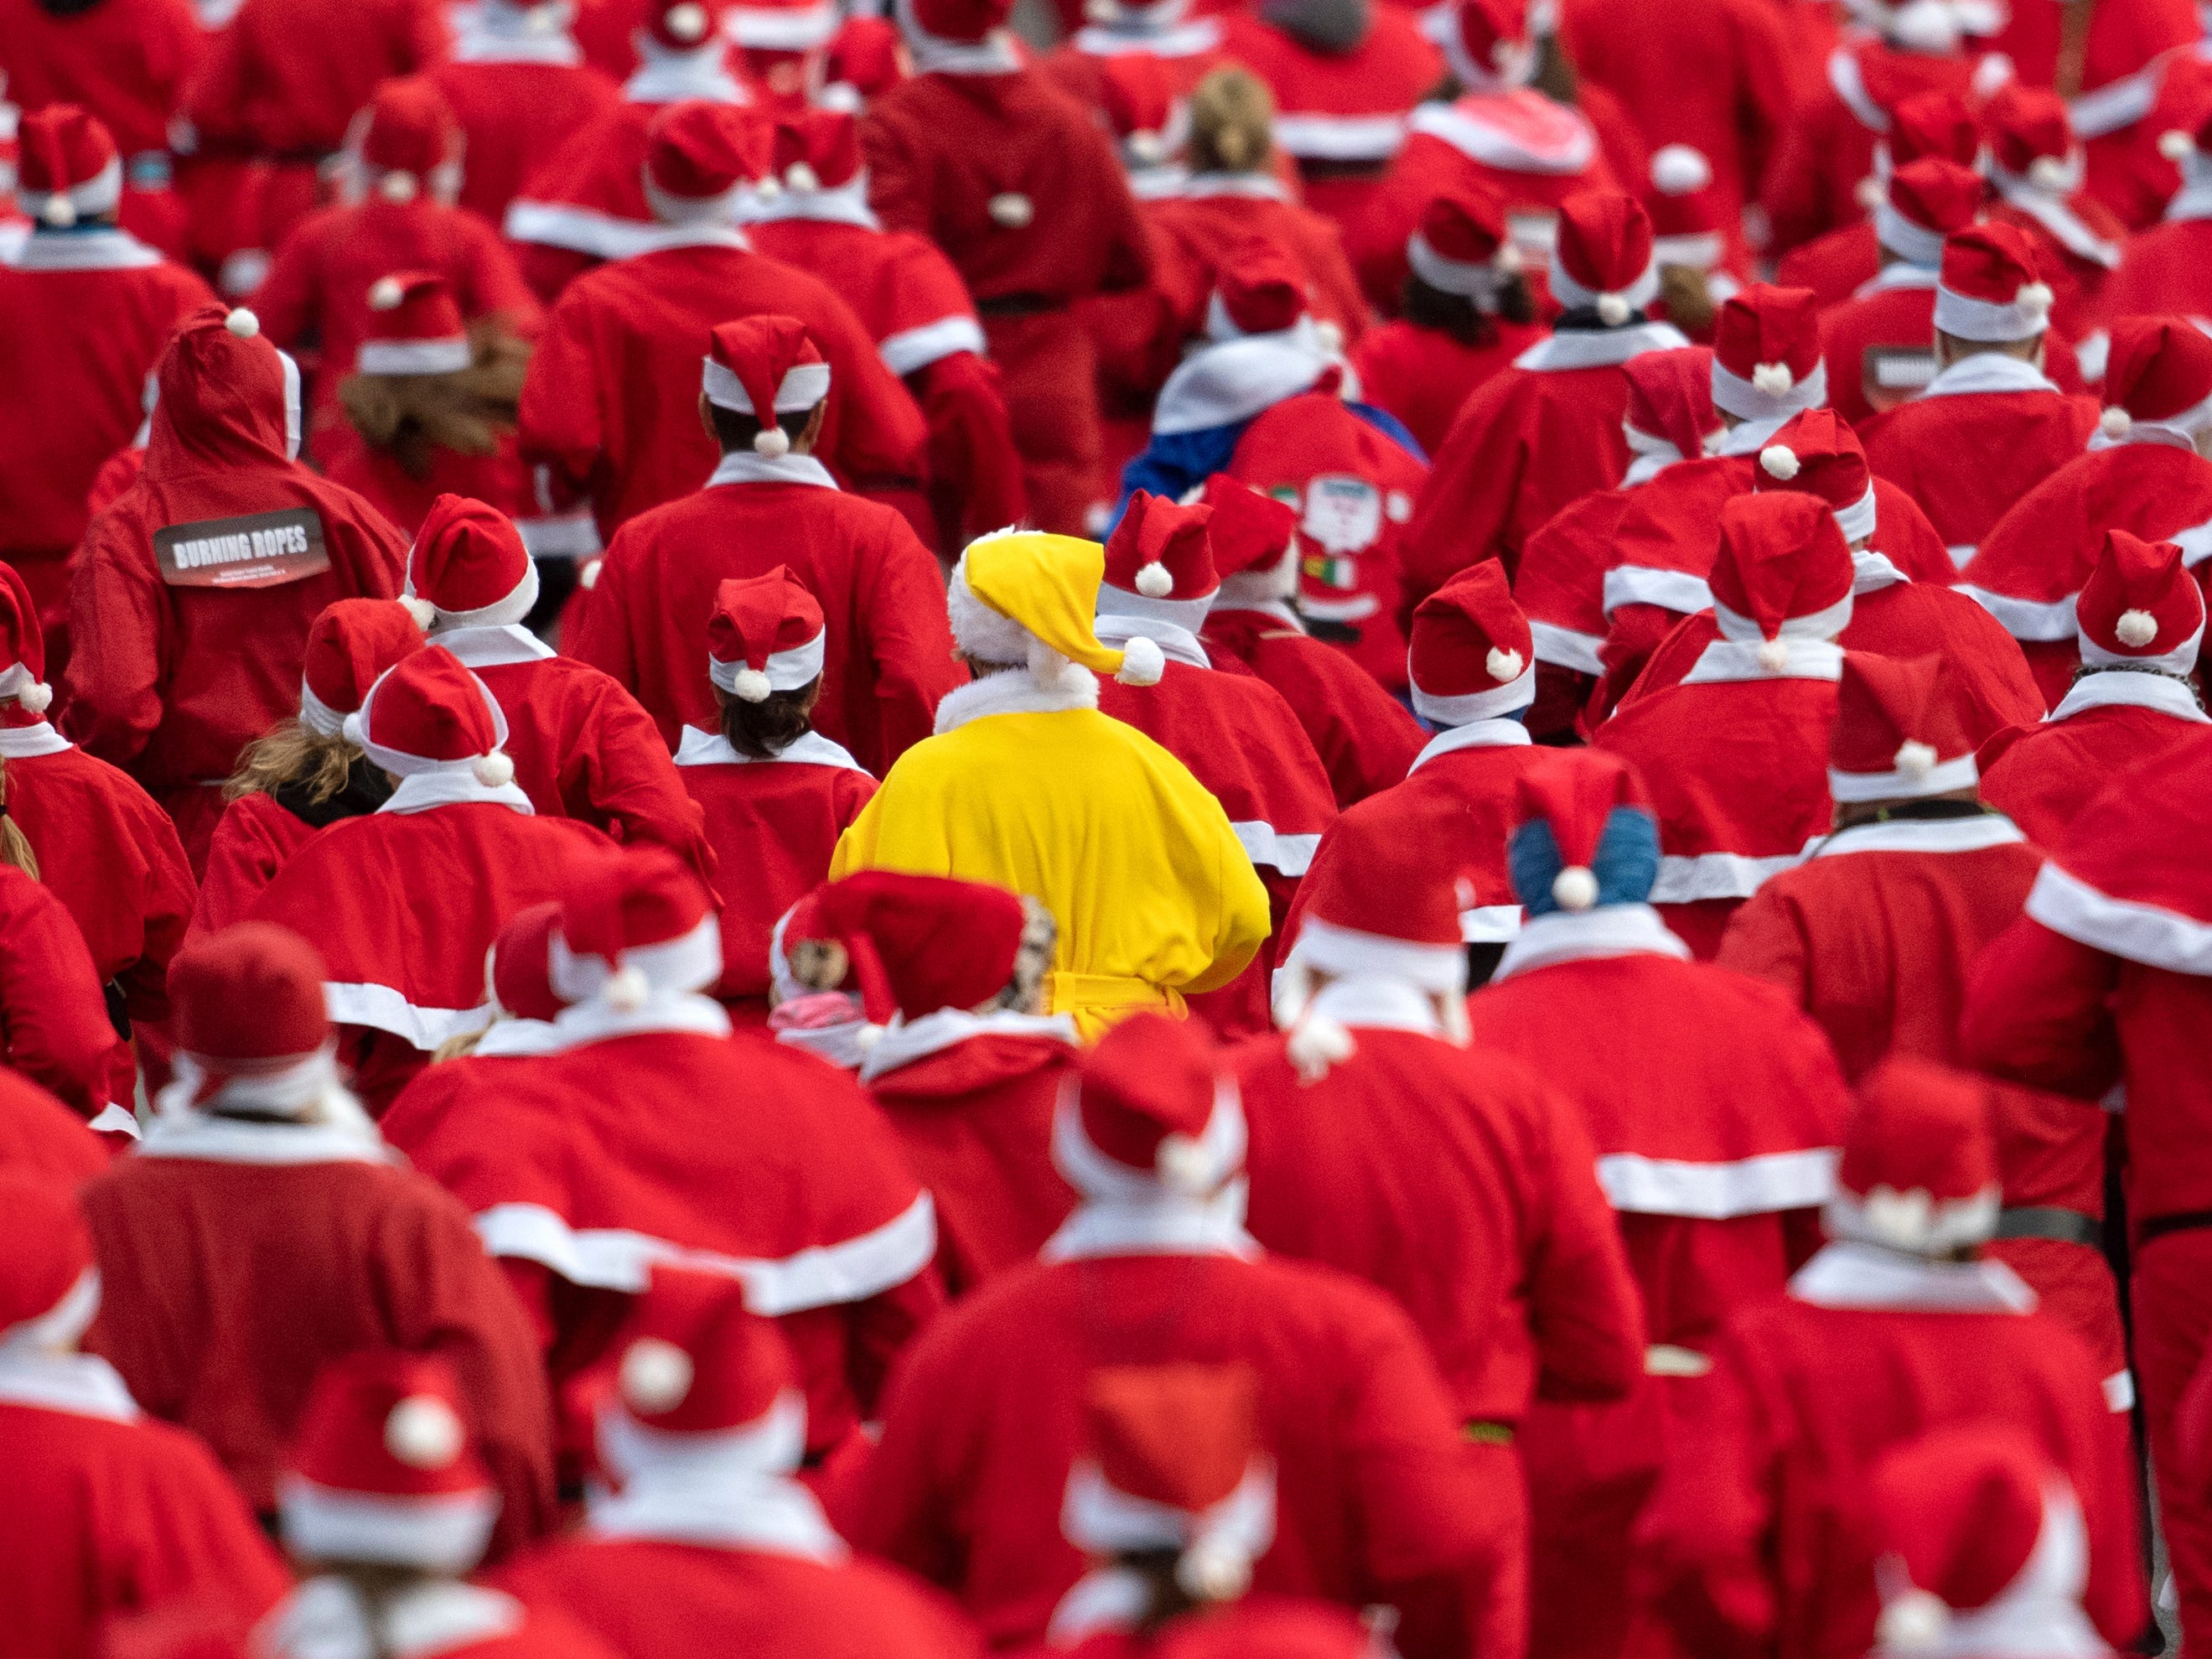 A runner wears a yellow costume during a Santa run with 1000 people in Michendorf, Germany, Sunday, Dec.9, 2018.